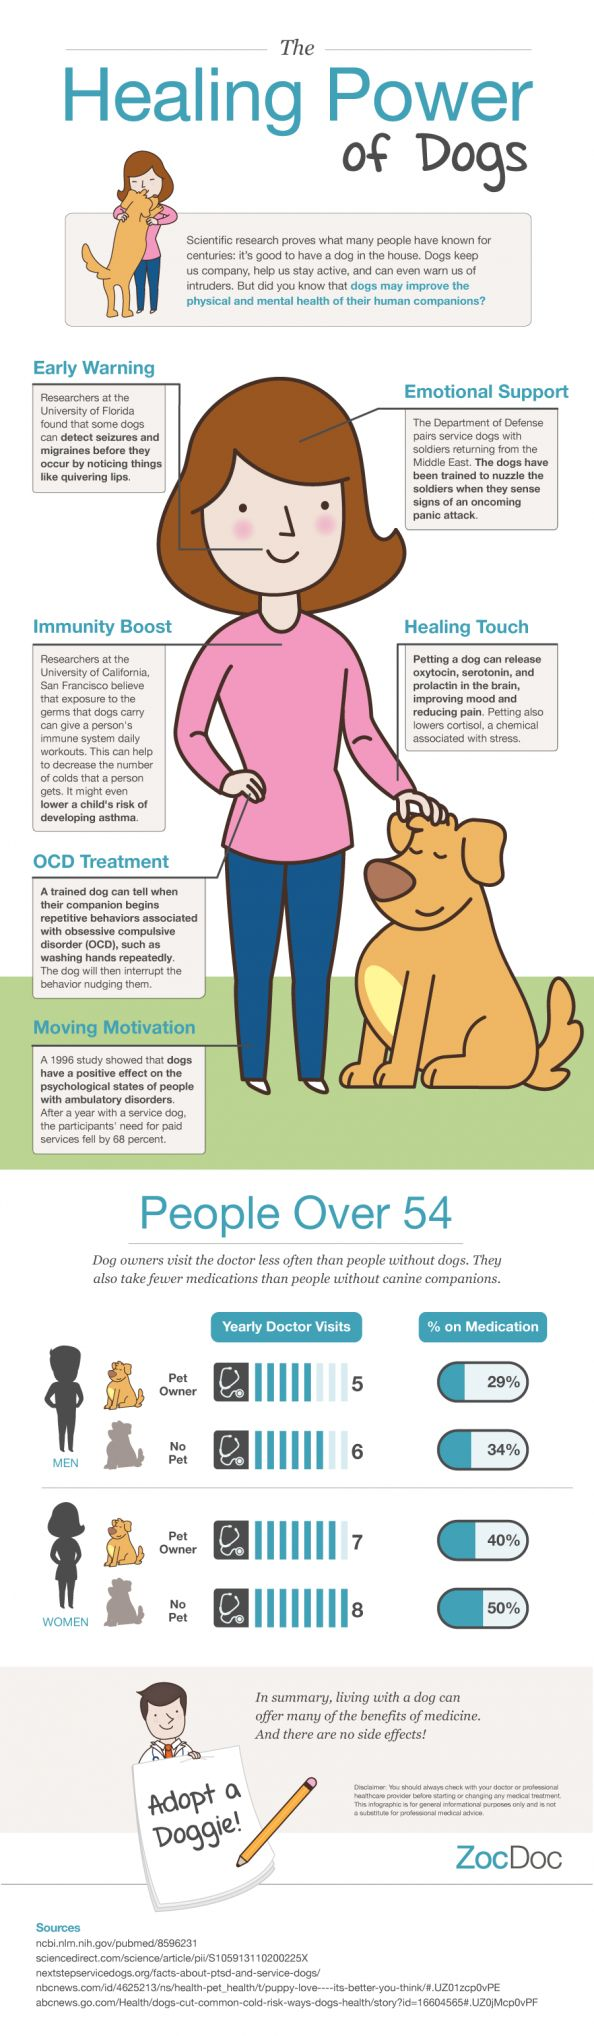 a study of the effects of dog ownership on mental health Research suggests that your fluffy friend truly is good for your physical and mental health study found that dog the effects of pet ownership on.